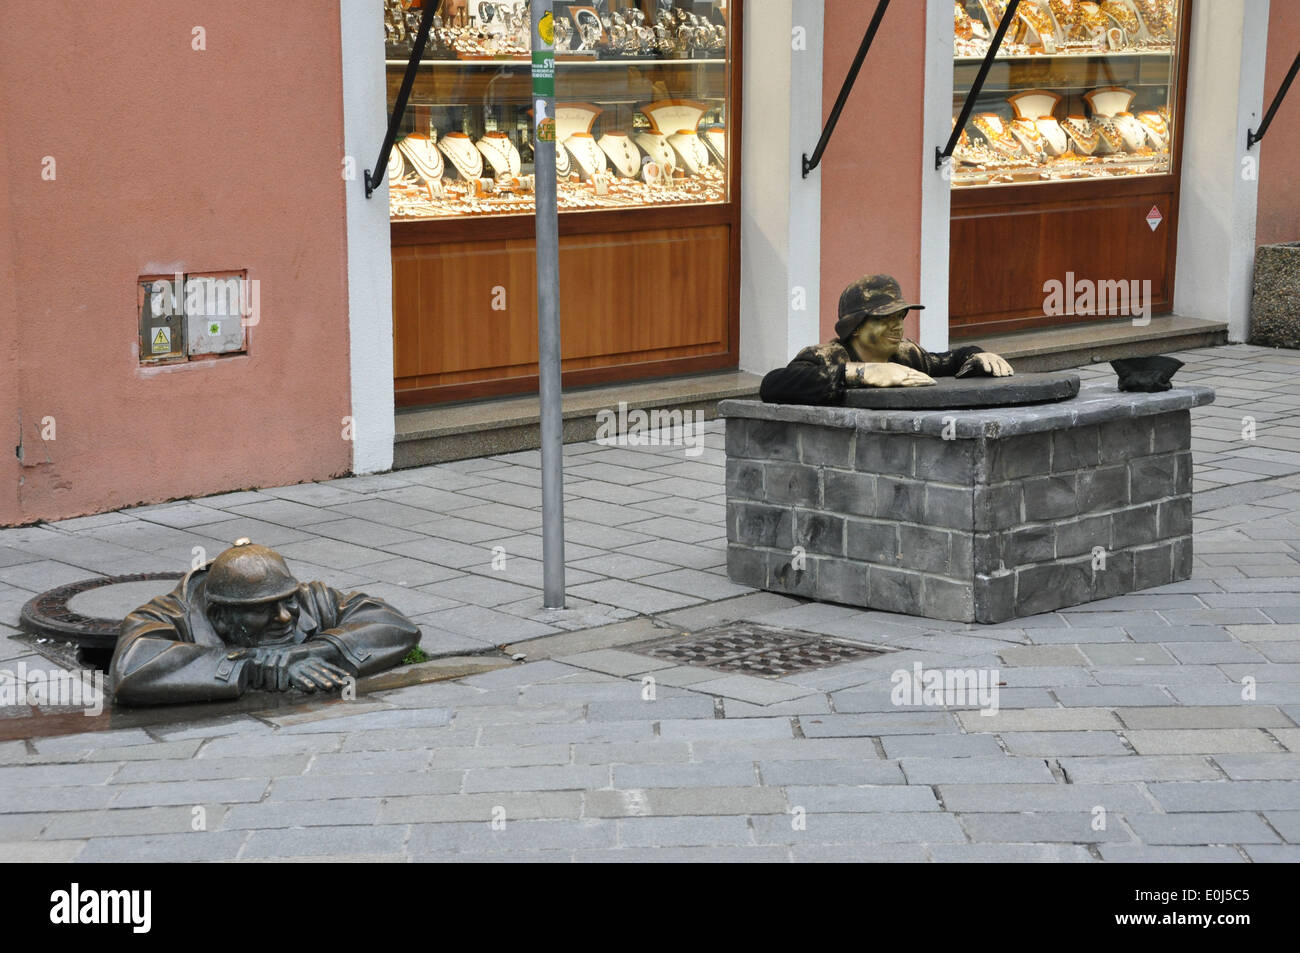 A busker mimicking a statue in Bratislava's Old Town. - Stock Image